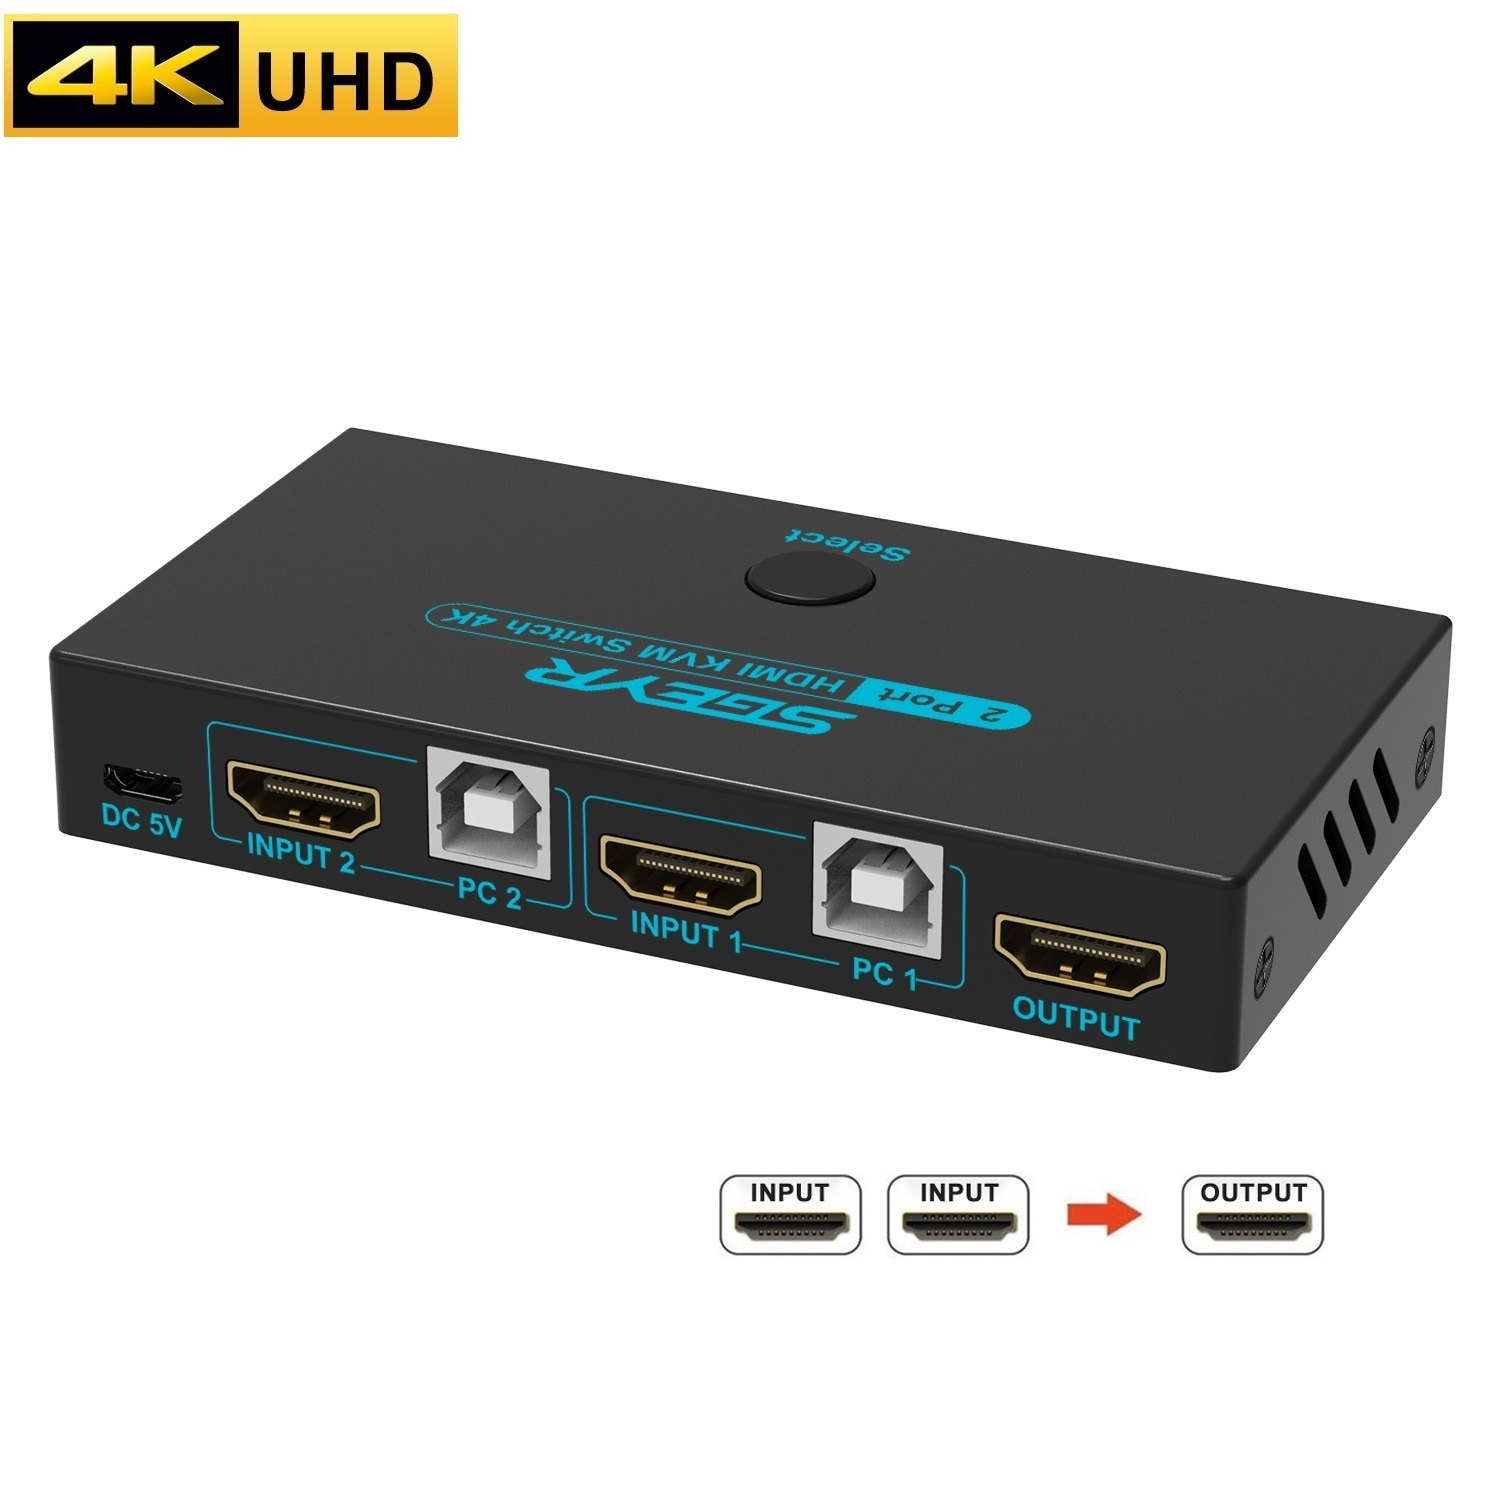 4K 2 Port KVM Switch HDMI USB 2.0 KVM Switcher with 2 Computers Sharing One Set of Keyboard,Mouse,Monitor